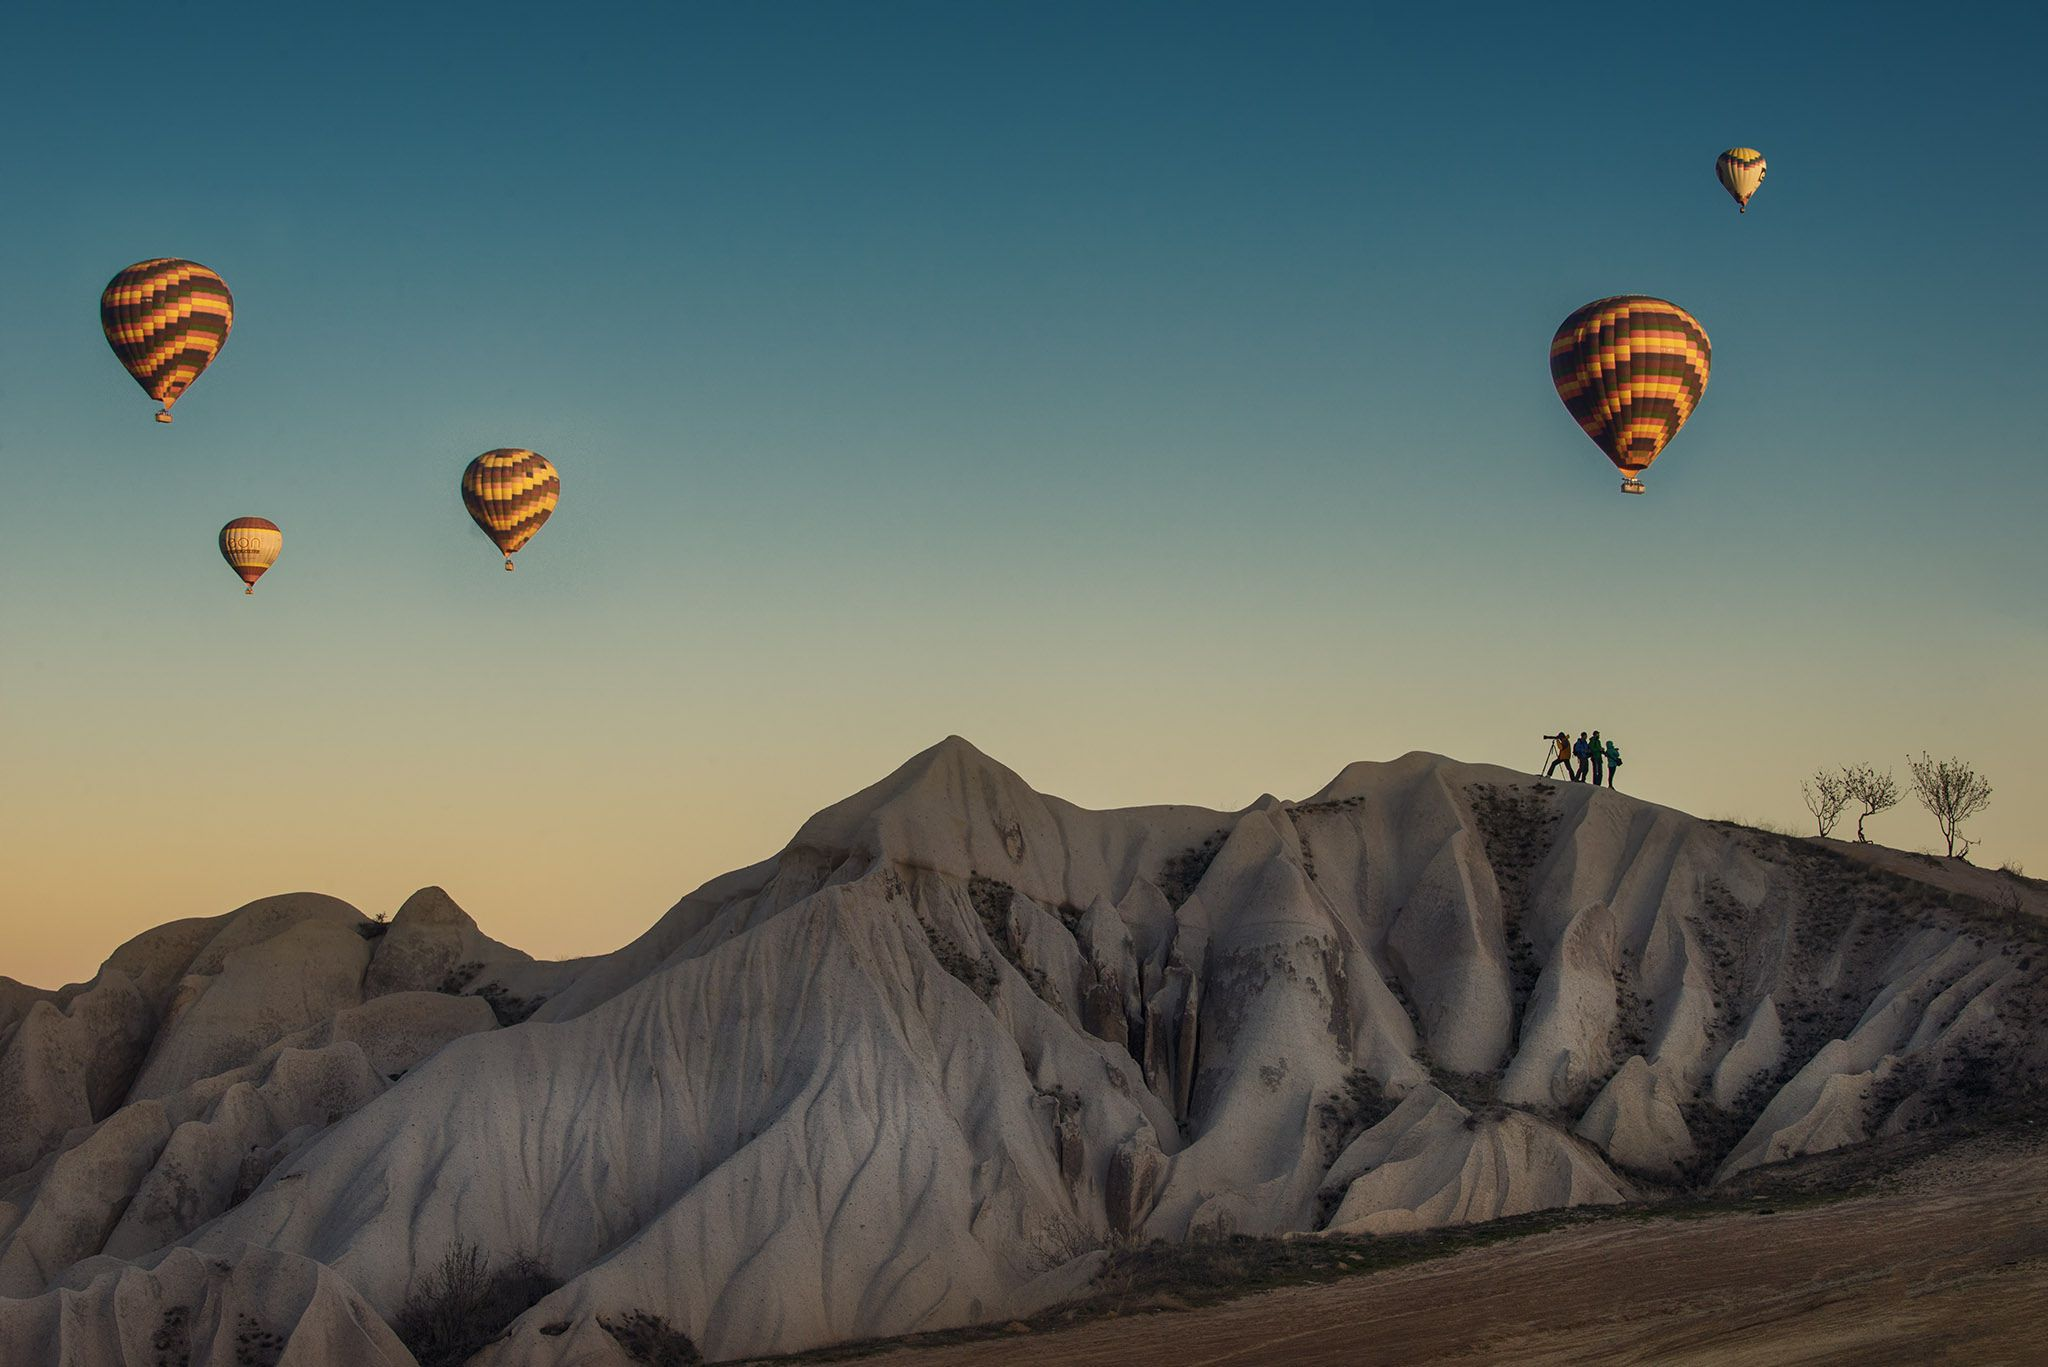 https://flic.kr/p/G4Q4pc | Shooting balloons in Cappadocia | Shooting balloons in Cappadocia.  Visit our: Photography workshops in Bulgaria ____________________________________________ My Facebook - My Website - My 500px